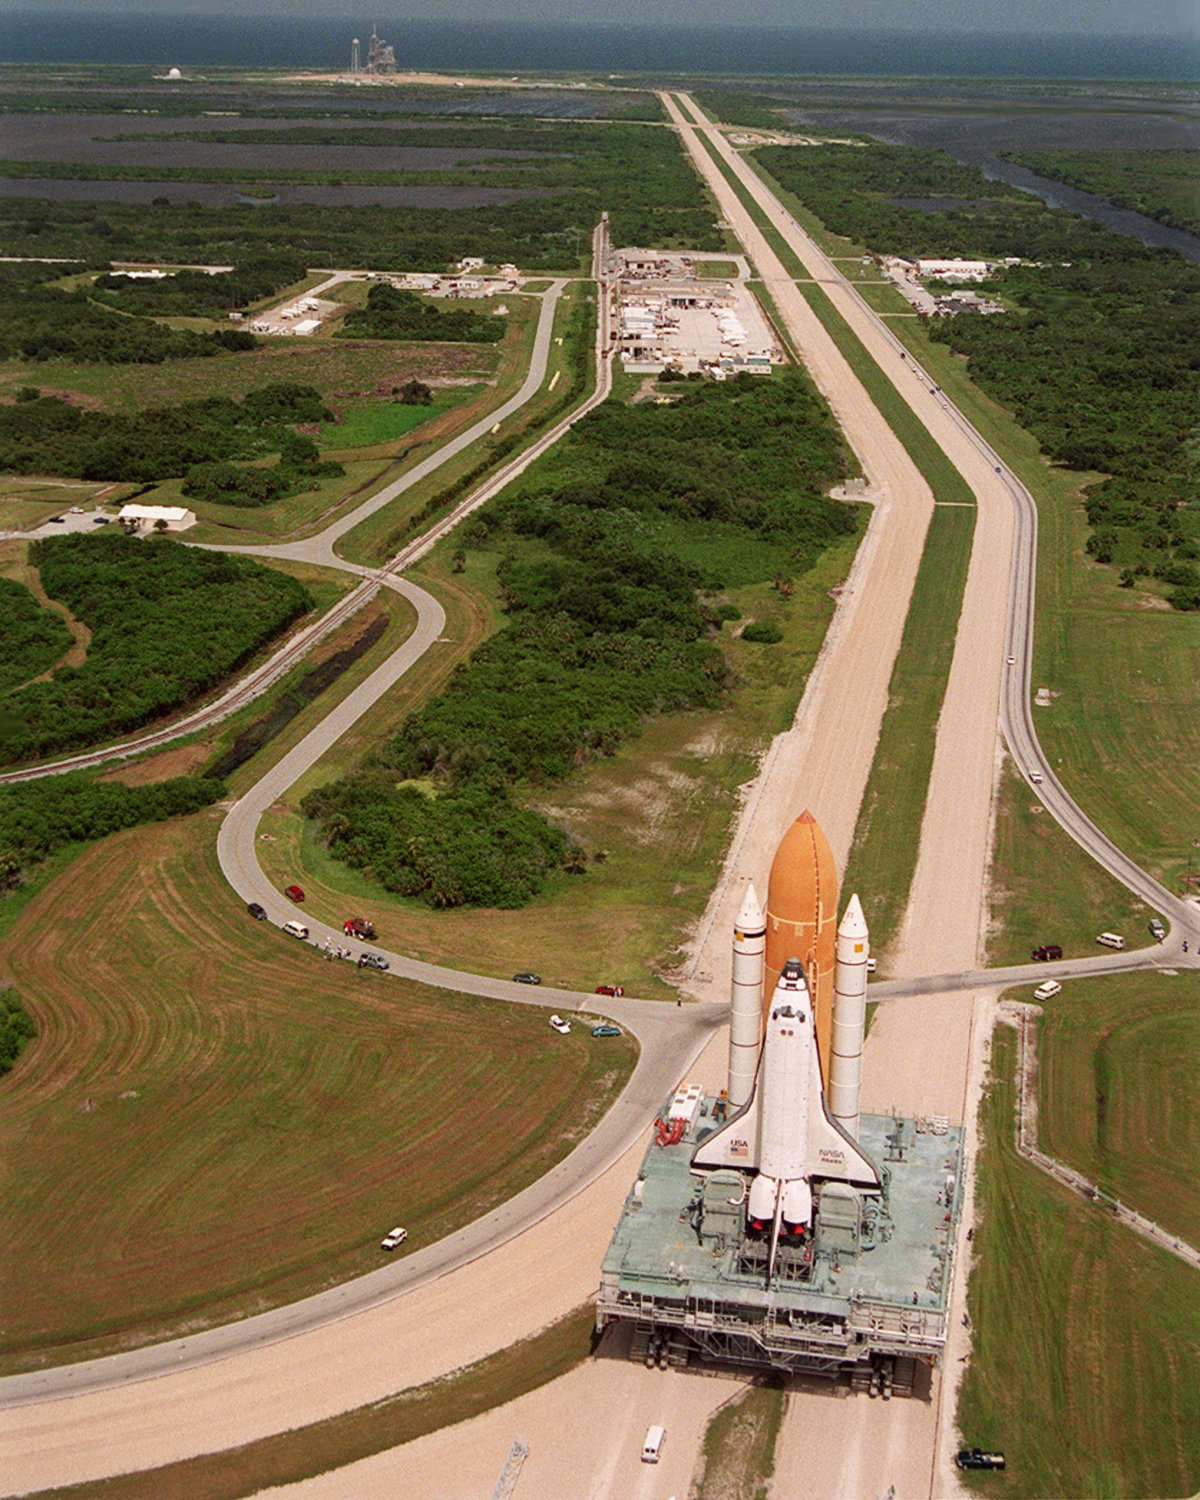 SPACE SHUTTLE ATLANTIS ROLLS TO LAUNCH PAD FOR STS-79 8X10 NASA PHOTO (EP-412)